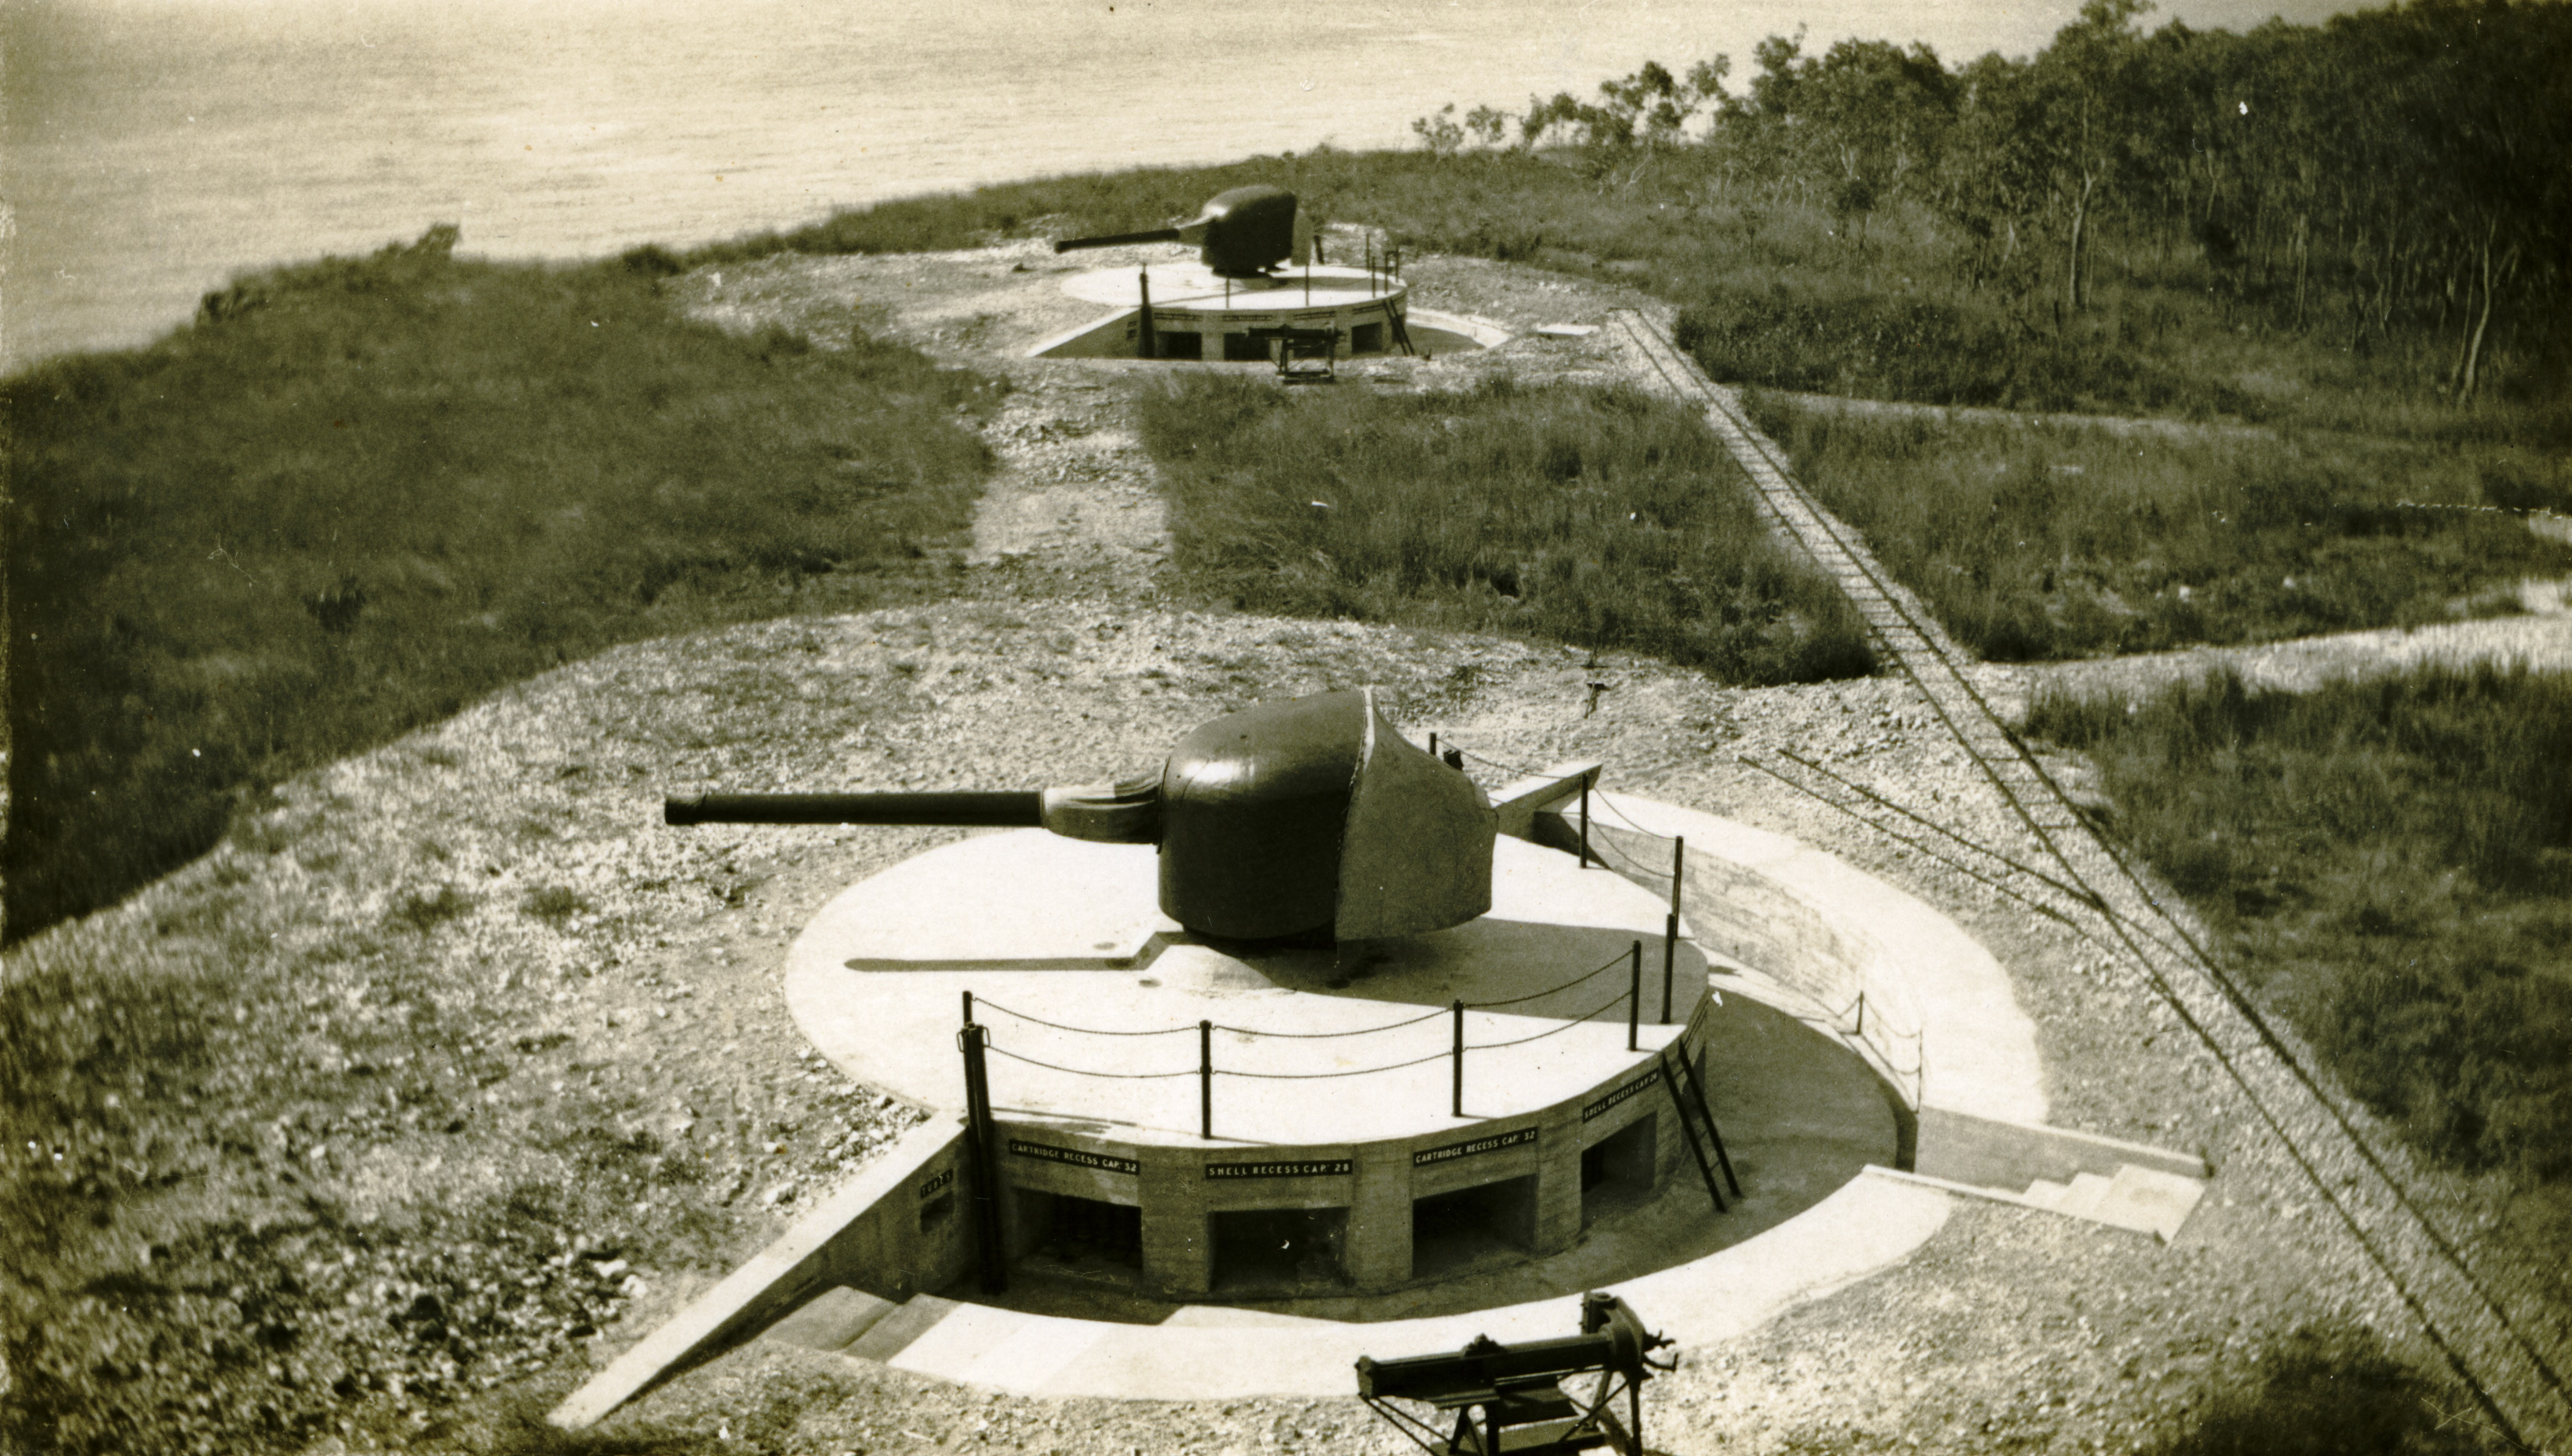 Two 6-inch naval guns emplaced at East Point in 1936 to protect the harbour entrance.